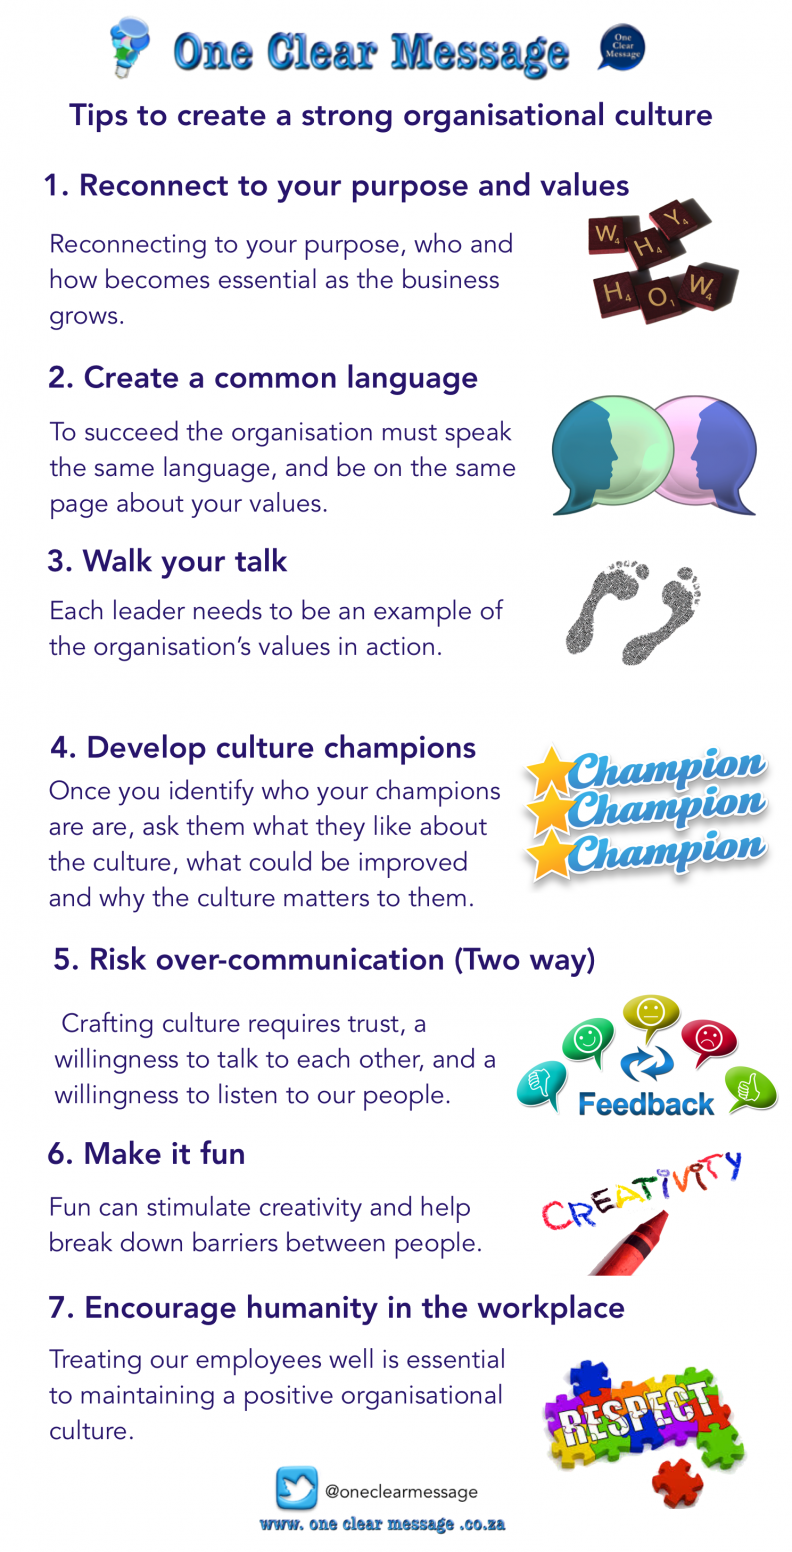 Tips to create a strong organisational culture Infographic